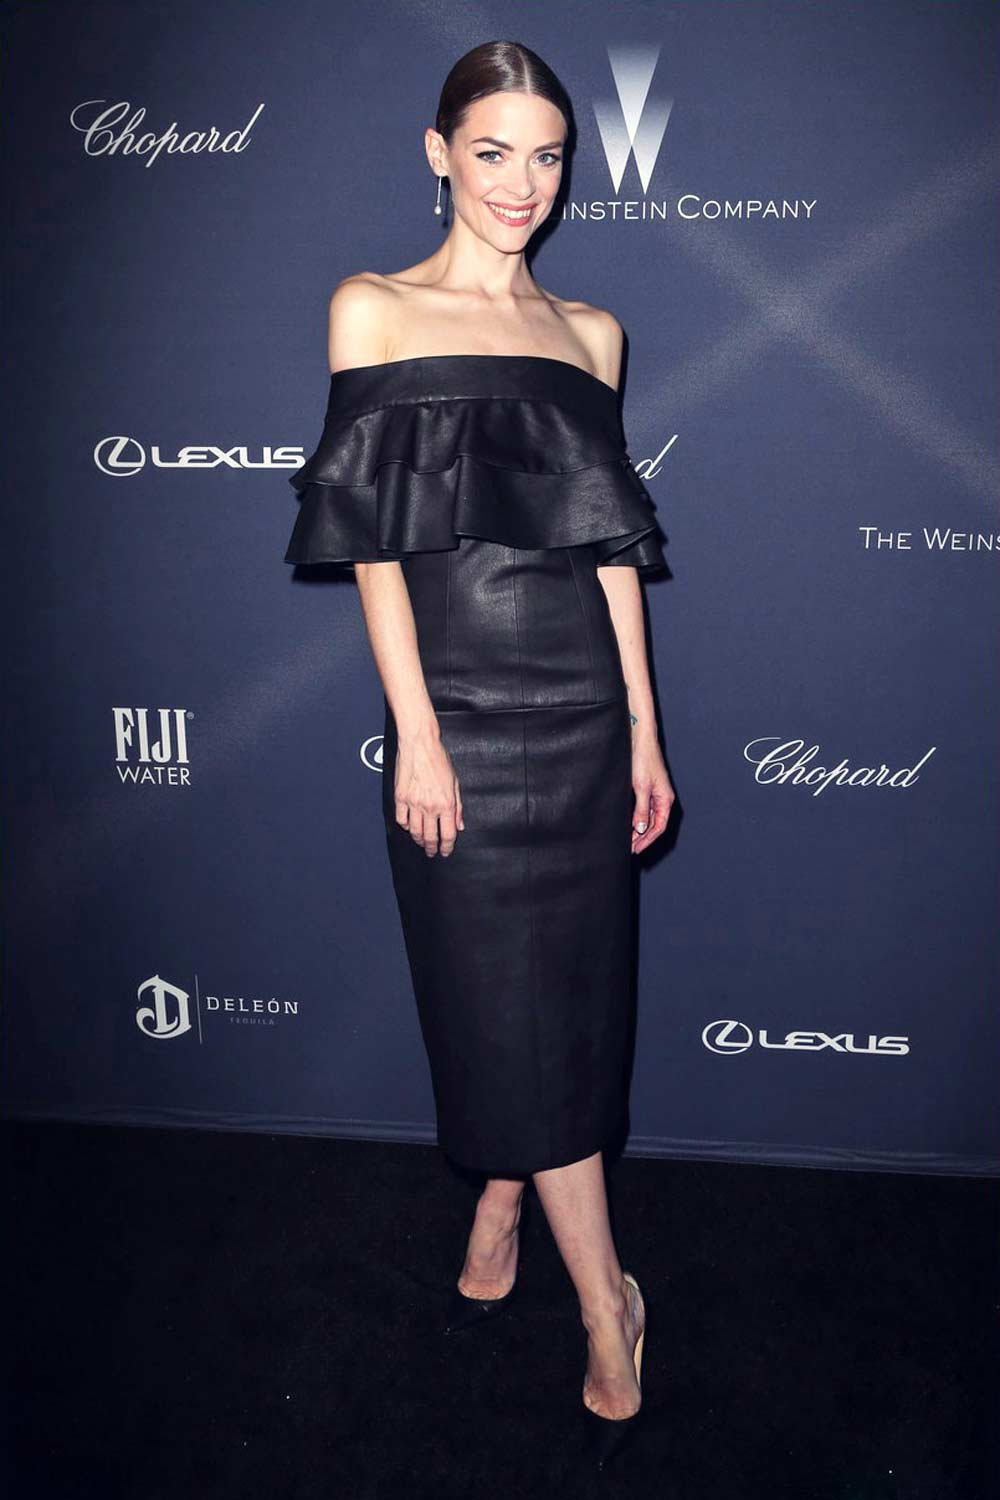 Jaime King attends The Weinstein Company's Pre-Oscar Dinner